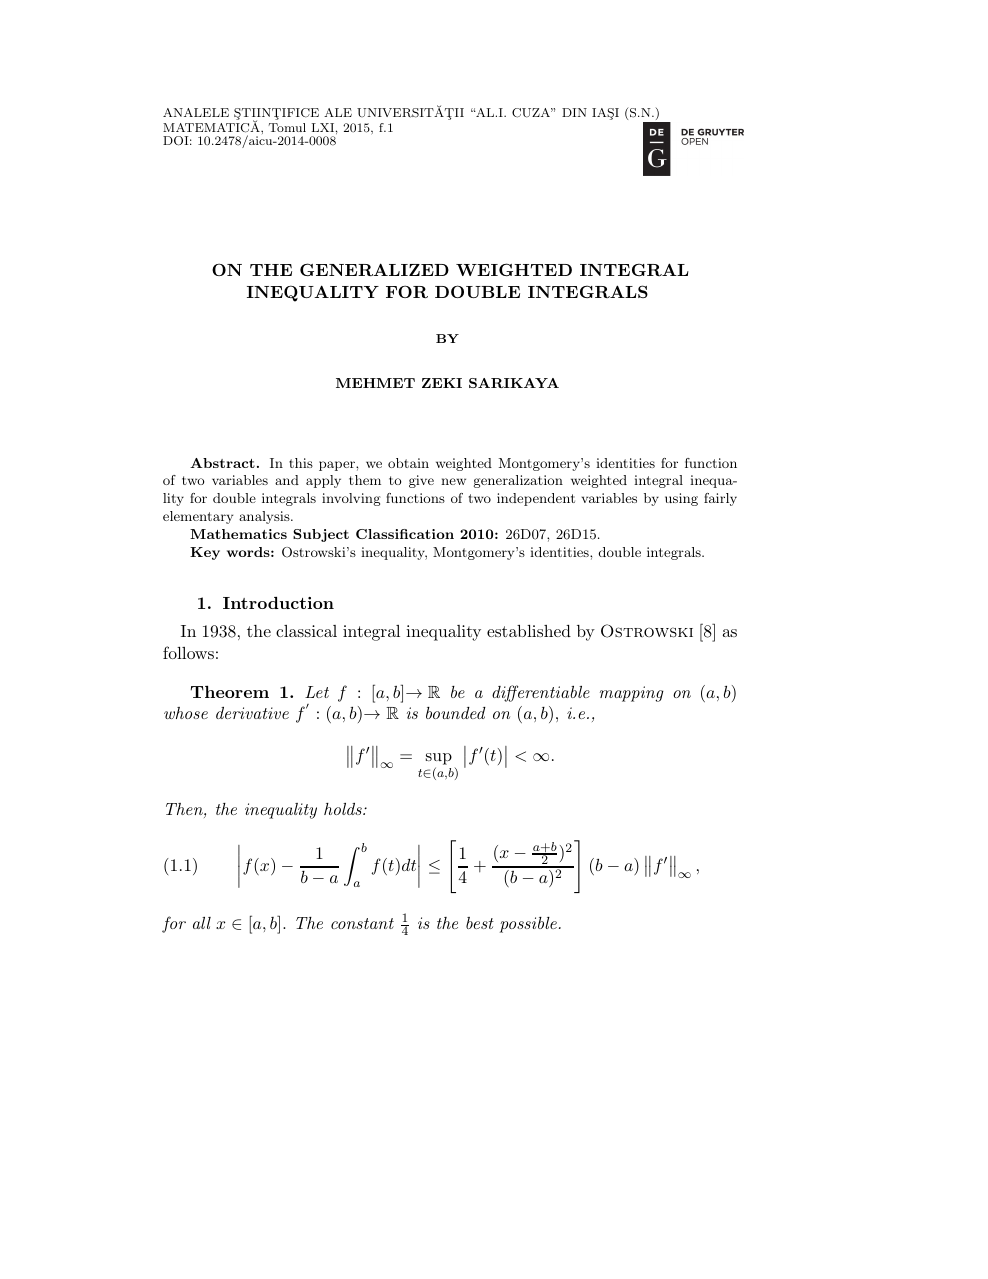 On the Generalized Weighted Integral Inequality for Double